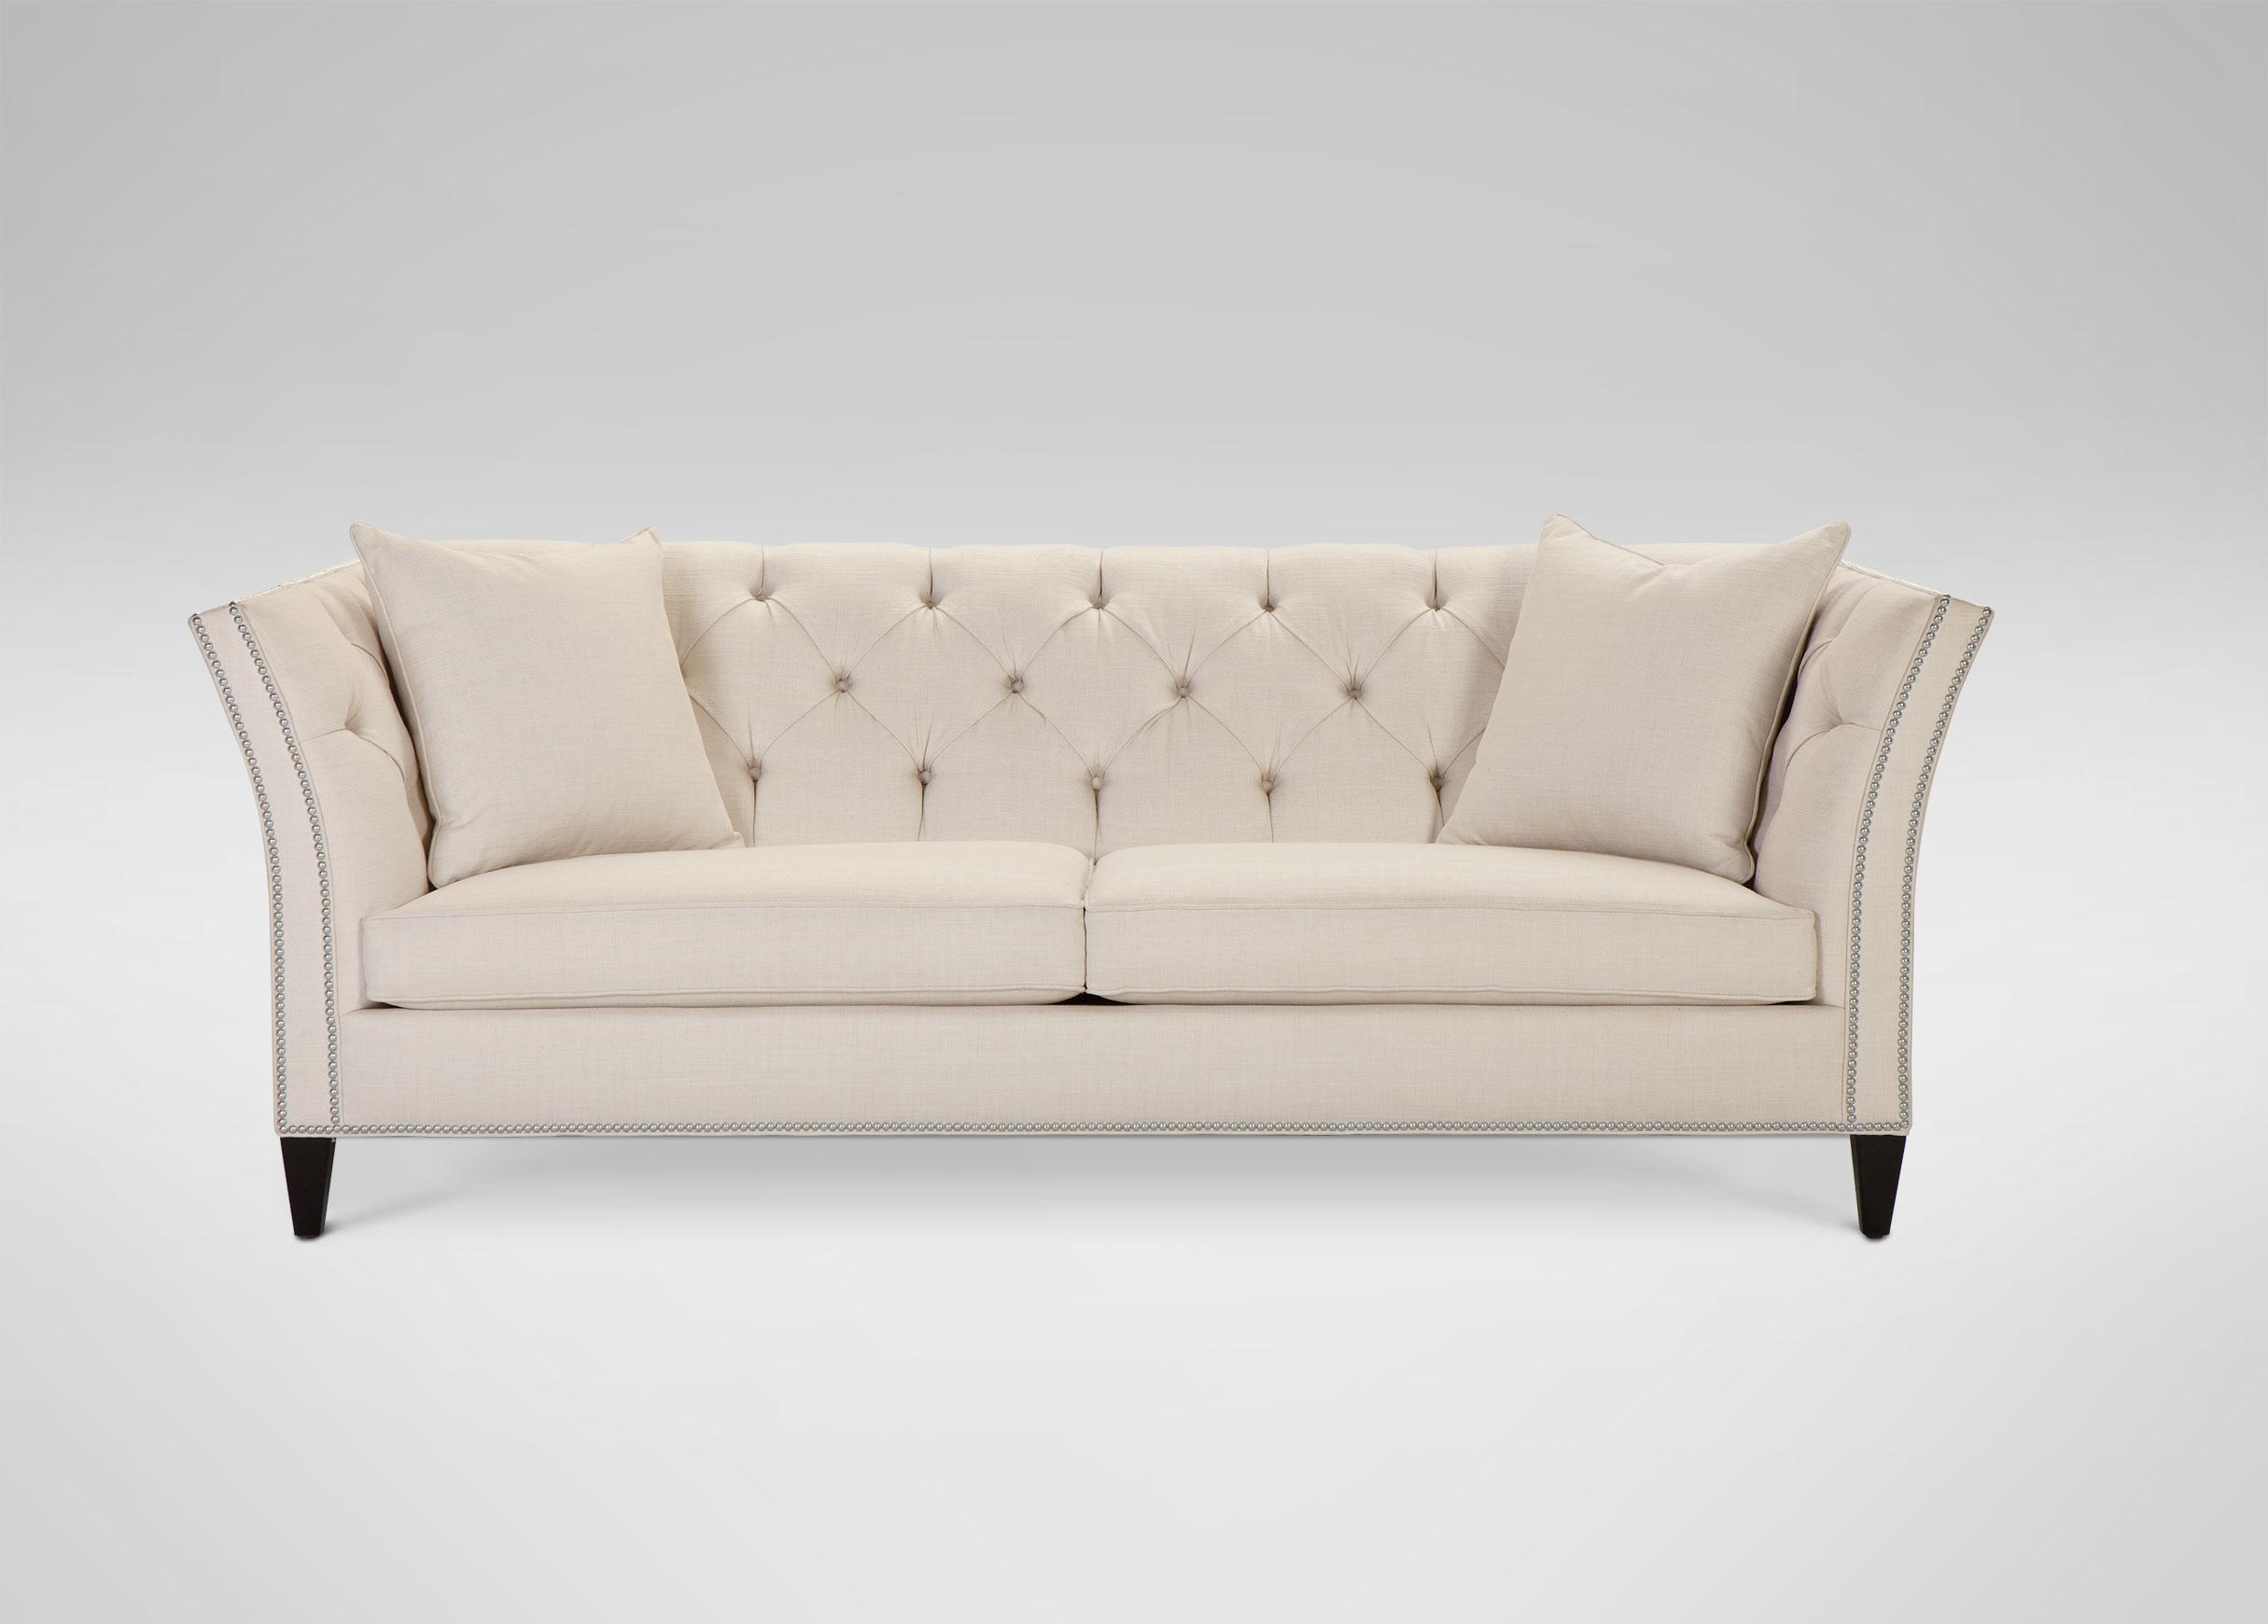 20 Inspirations Ethan Allen Chesterfield Sofas Sofa Ideas